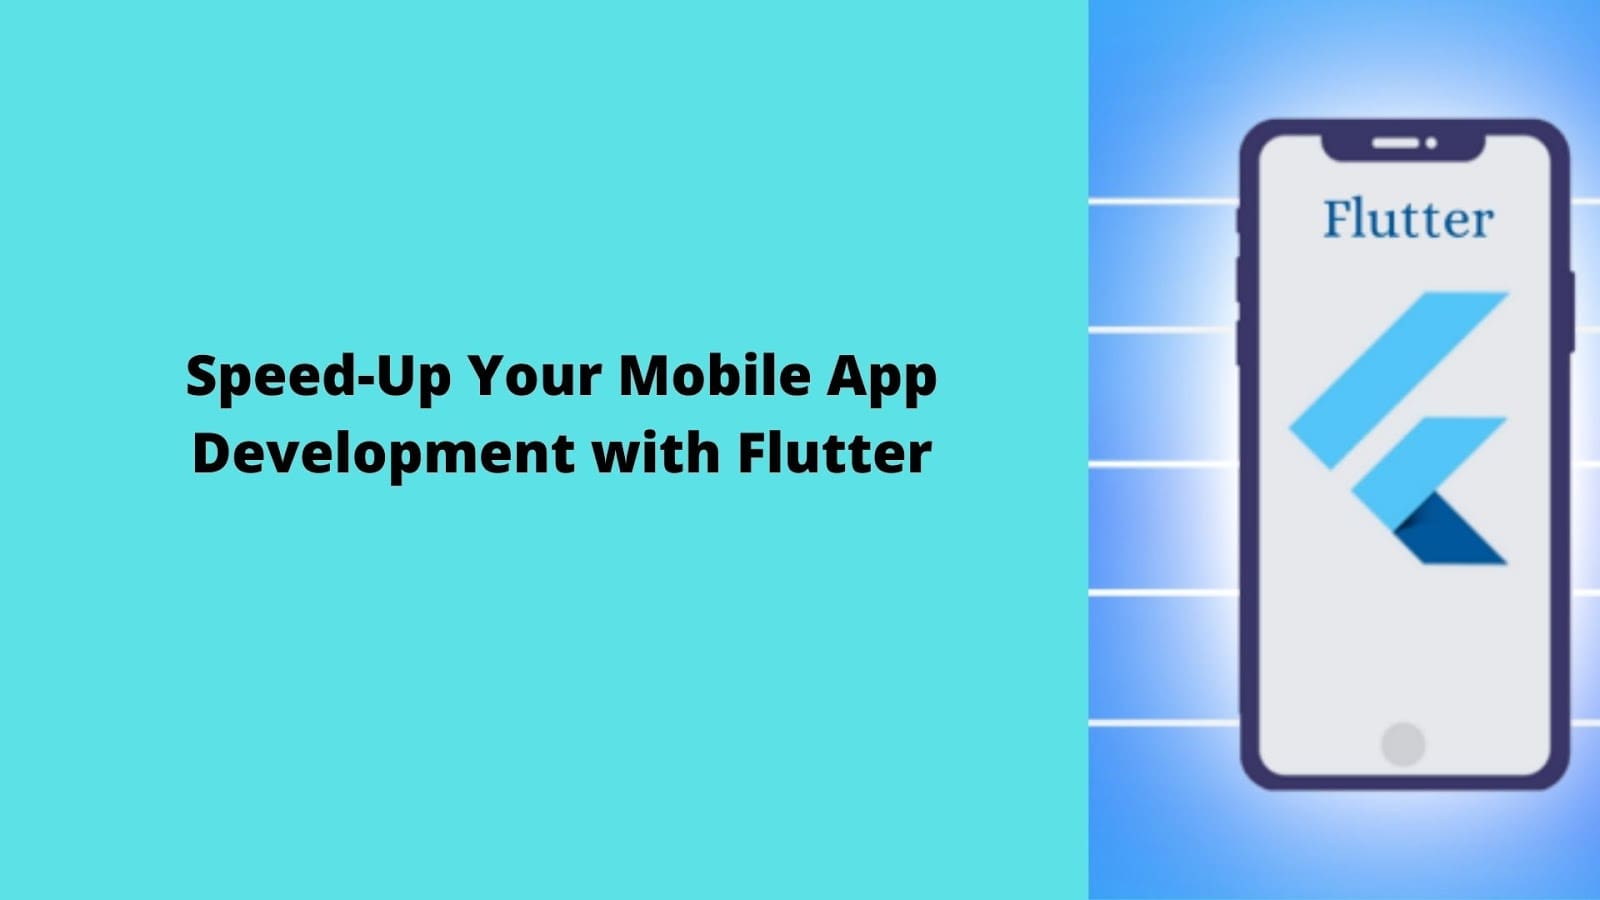 Speed-Up Your Mobile App Development with Flutter